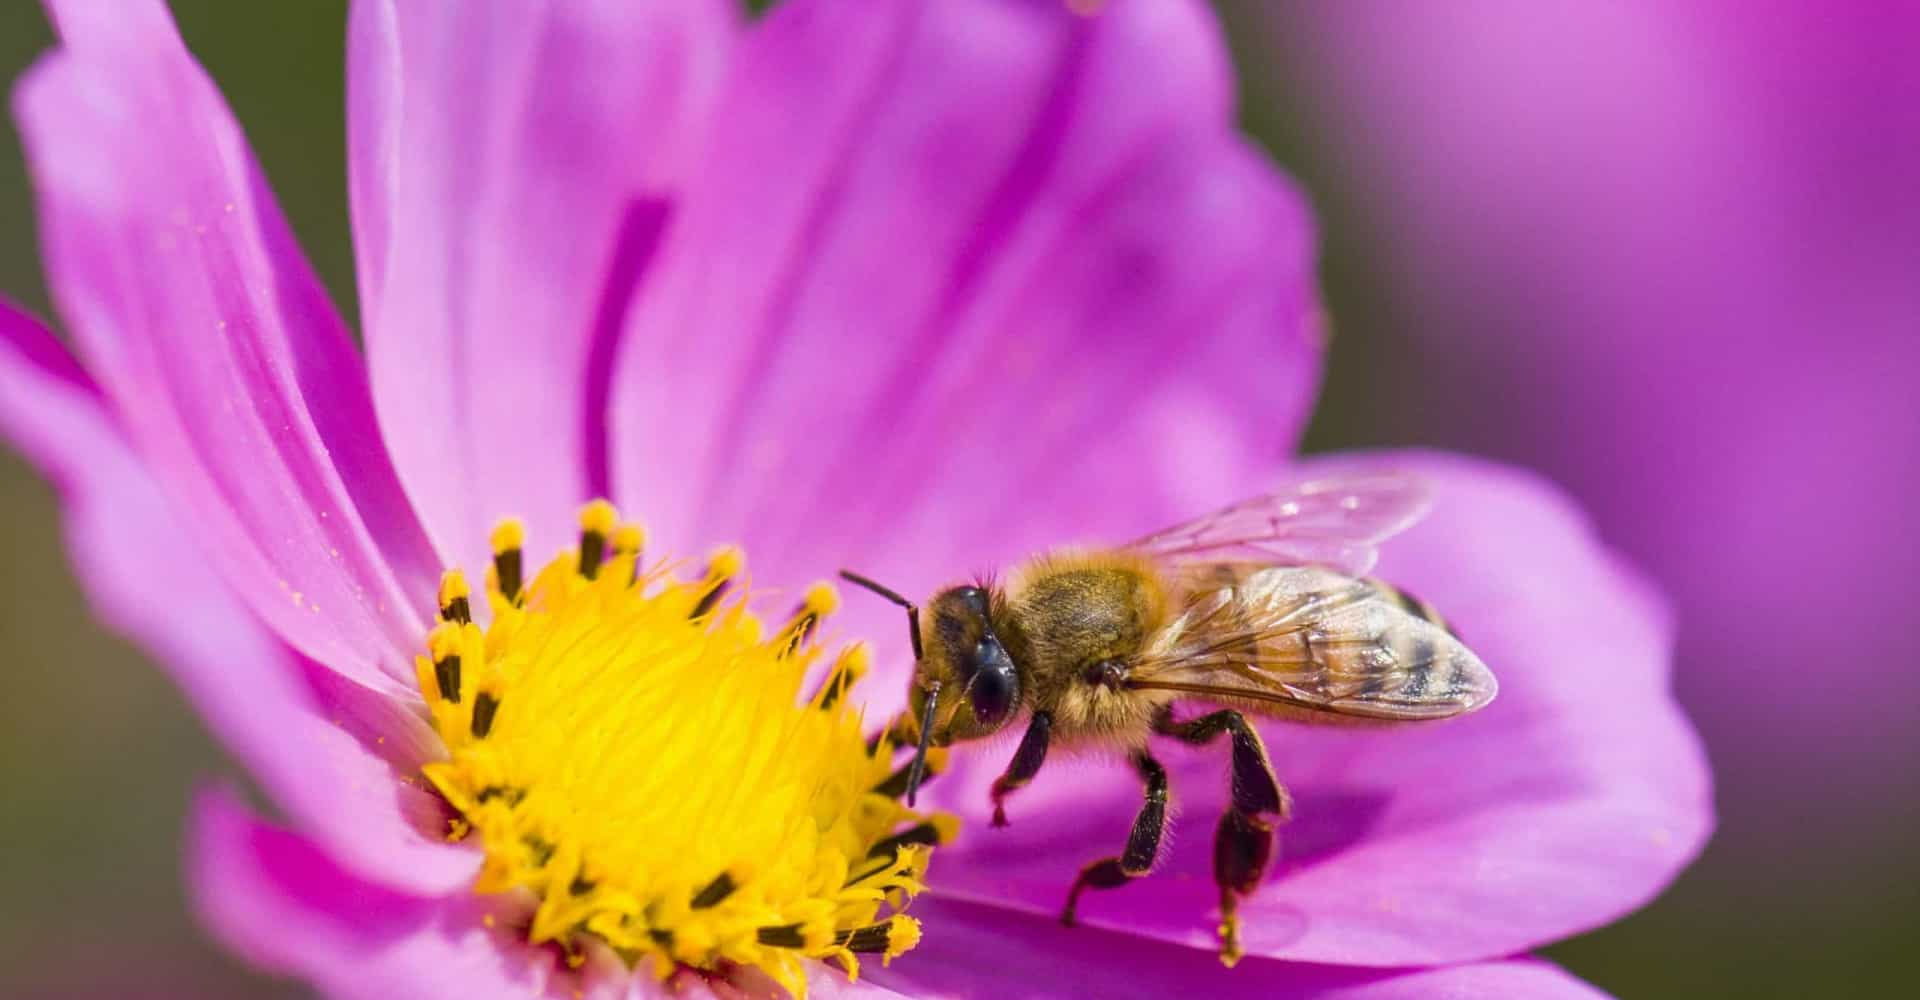 Fun, easy ways to help bees this summer